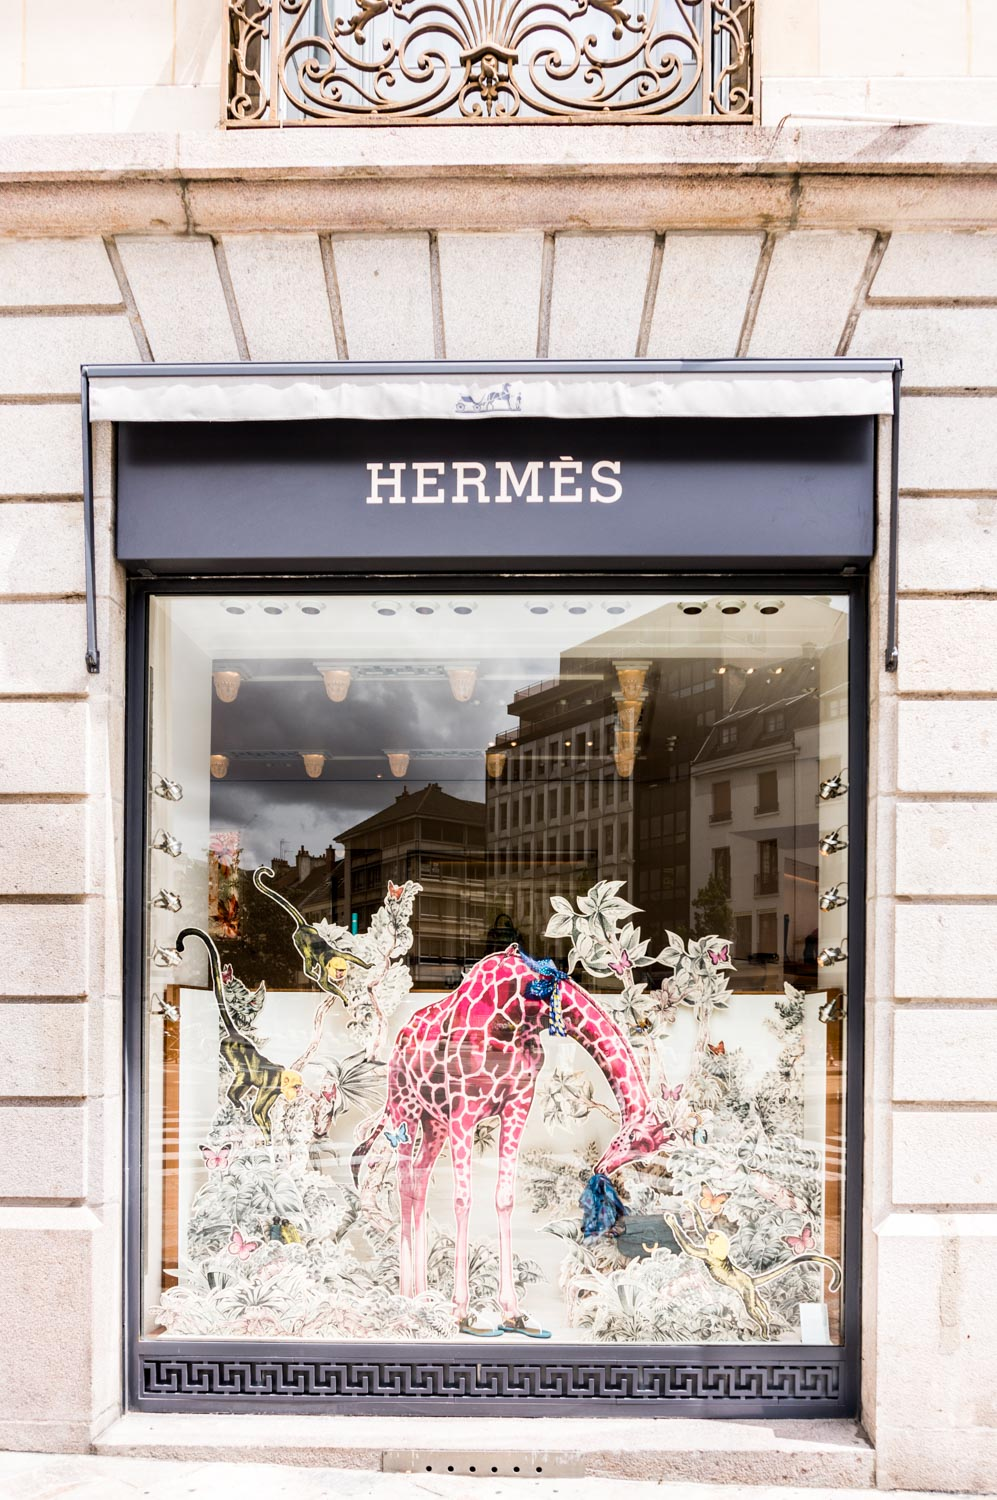 Really awesome window display in Hermes